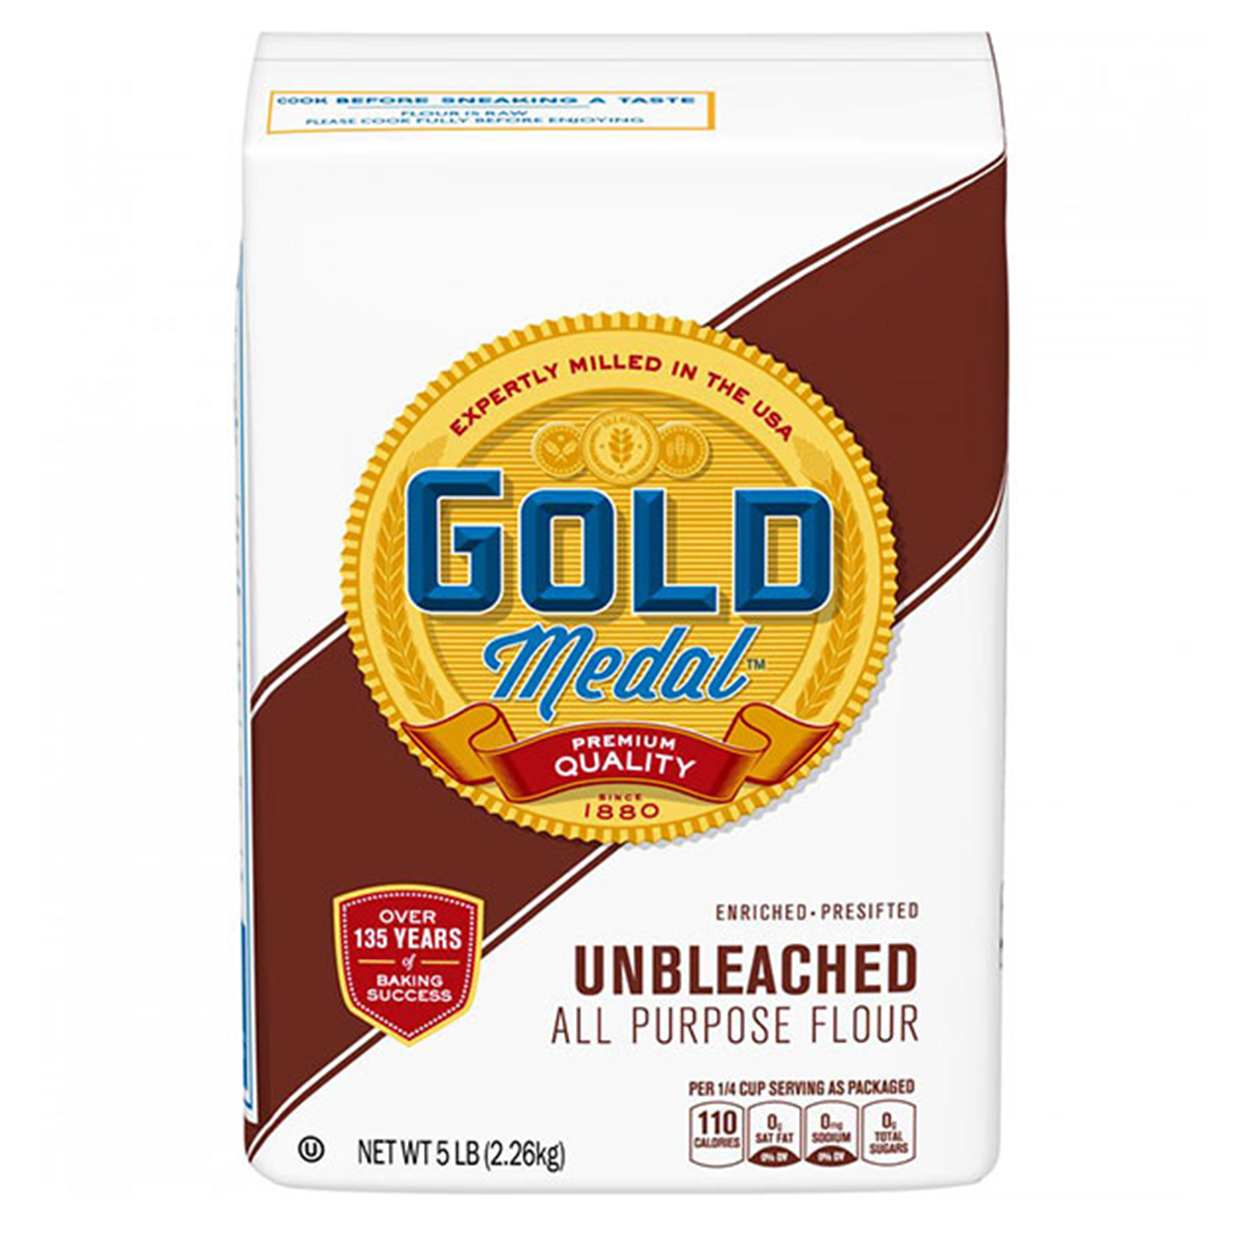 Gold Medal Flour Is Being Recalled Over Possible E. Coli Contamination